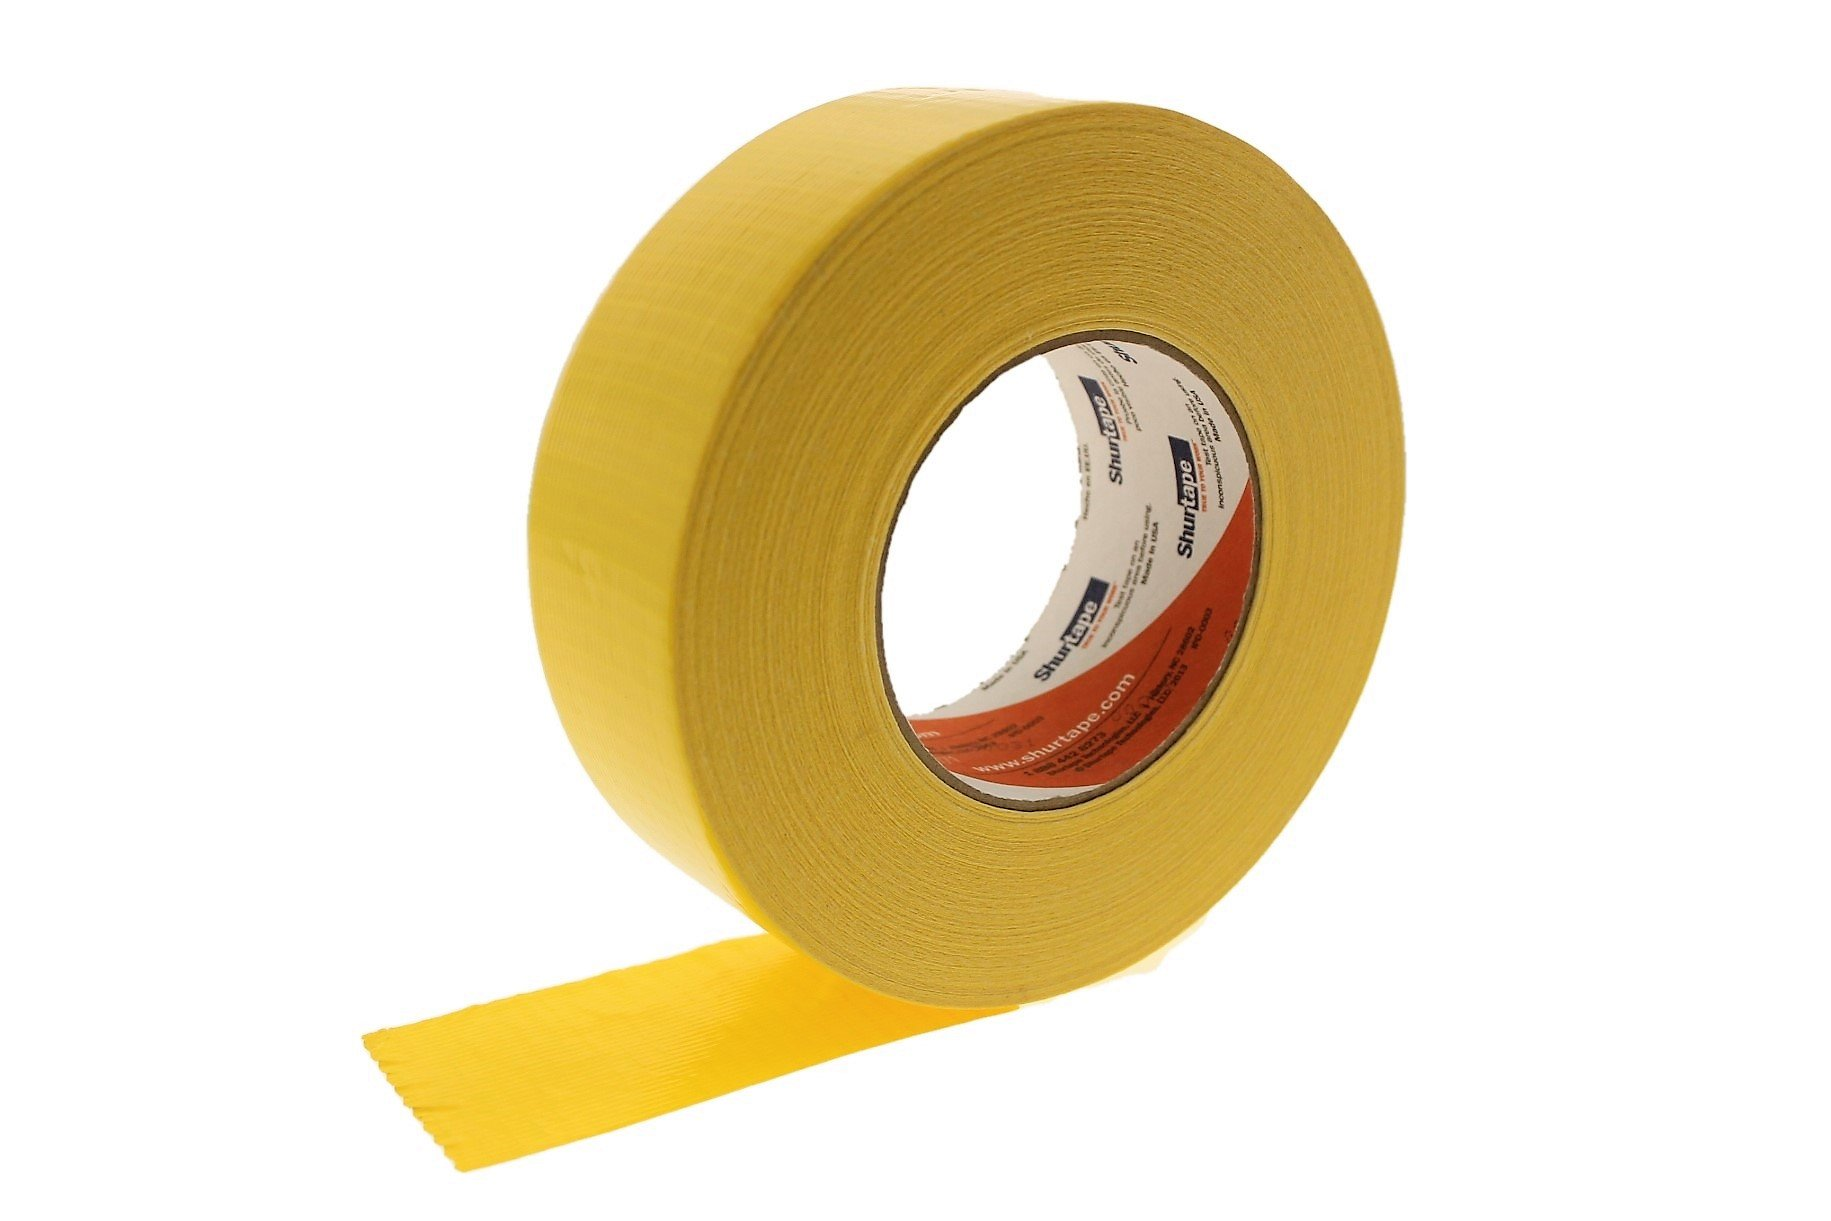 PC-600 Shurtape 2'' Yellow 9 Mil Cloth Duct Tape Waterproof Hand Tearable UV Resistant High Visibility Industrial Grade Heavy Duty Pro Colored Duct Tape Colors USA Made 60yd